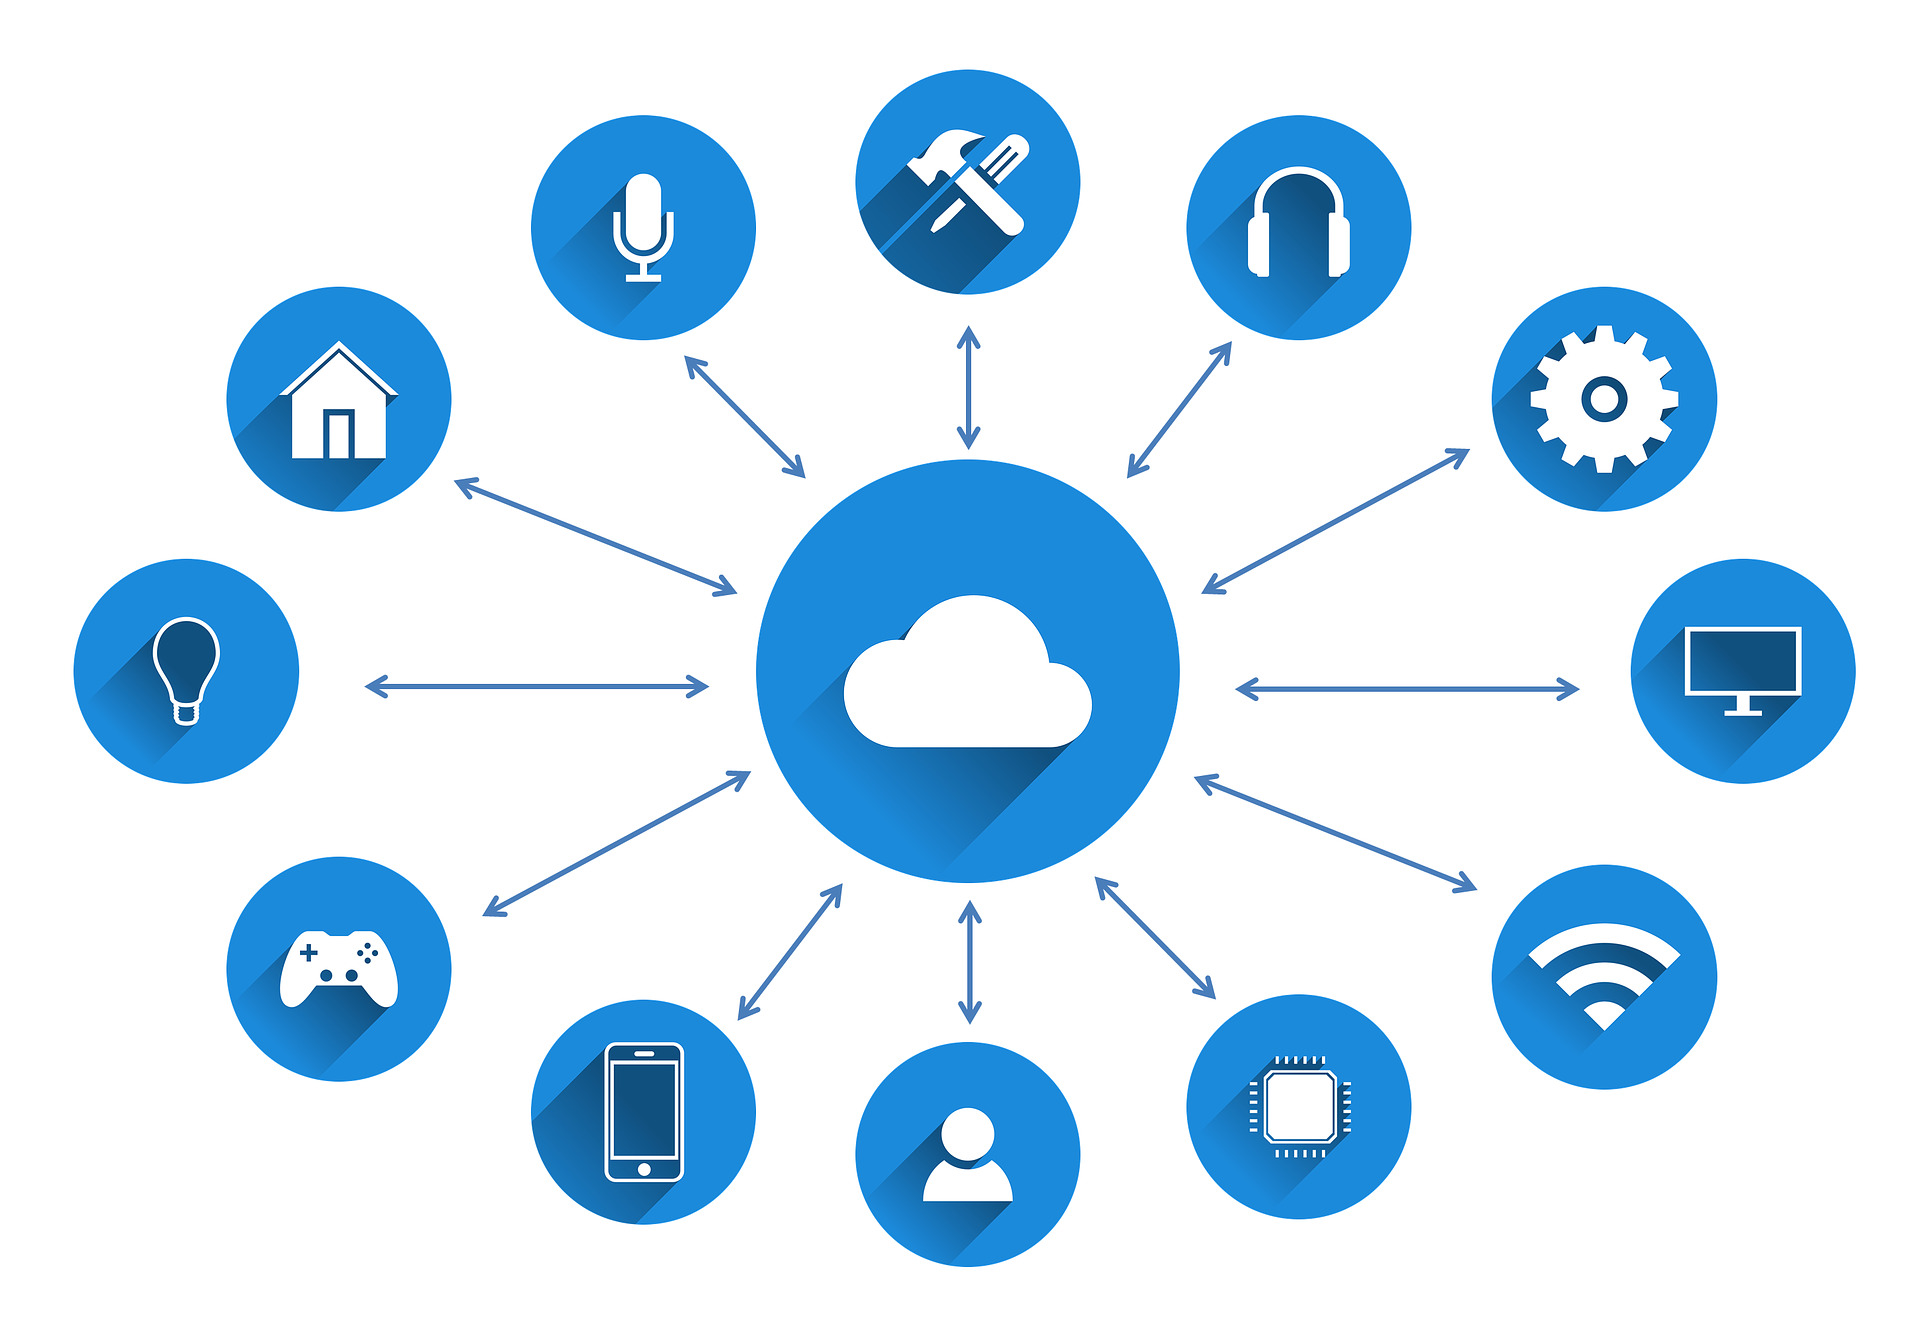 Cloud Private Branch Exchange (PBX) Software Market to Grow Significantly by 2019-2026 Focusing on Leading Players Microsoft, Bitrix, 3CX, Digium, Mitel Networks, CloudTalk, Monster VoIP